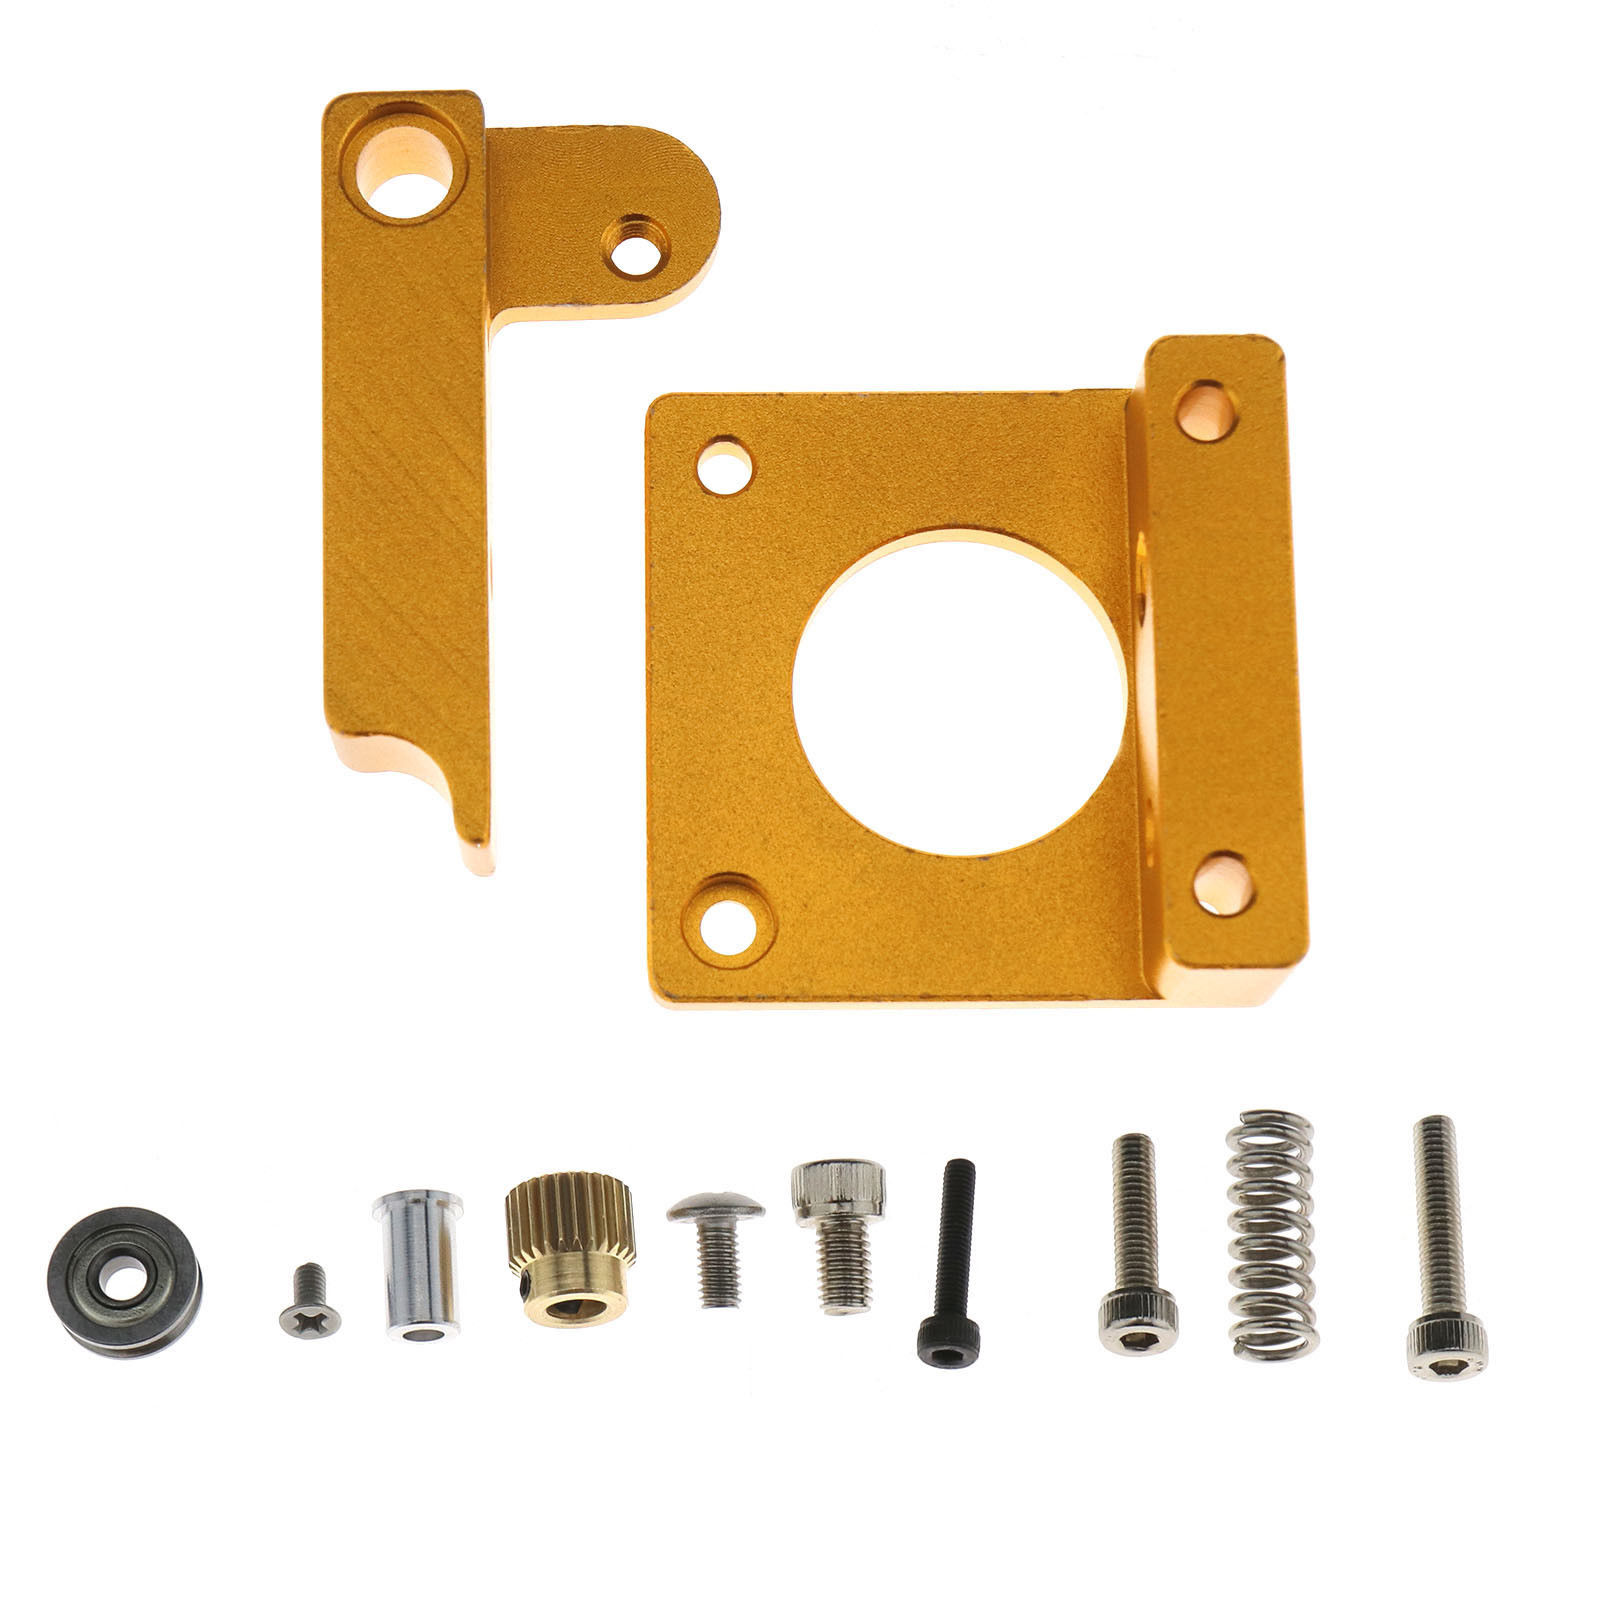 MK8 Extruder Aluminum Block DIY kit for Makerbot Single Nozzle Extrusion Aluminu